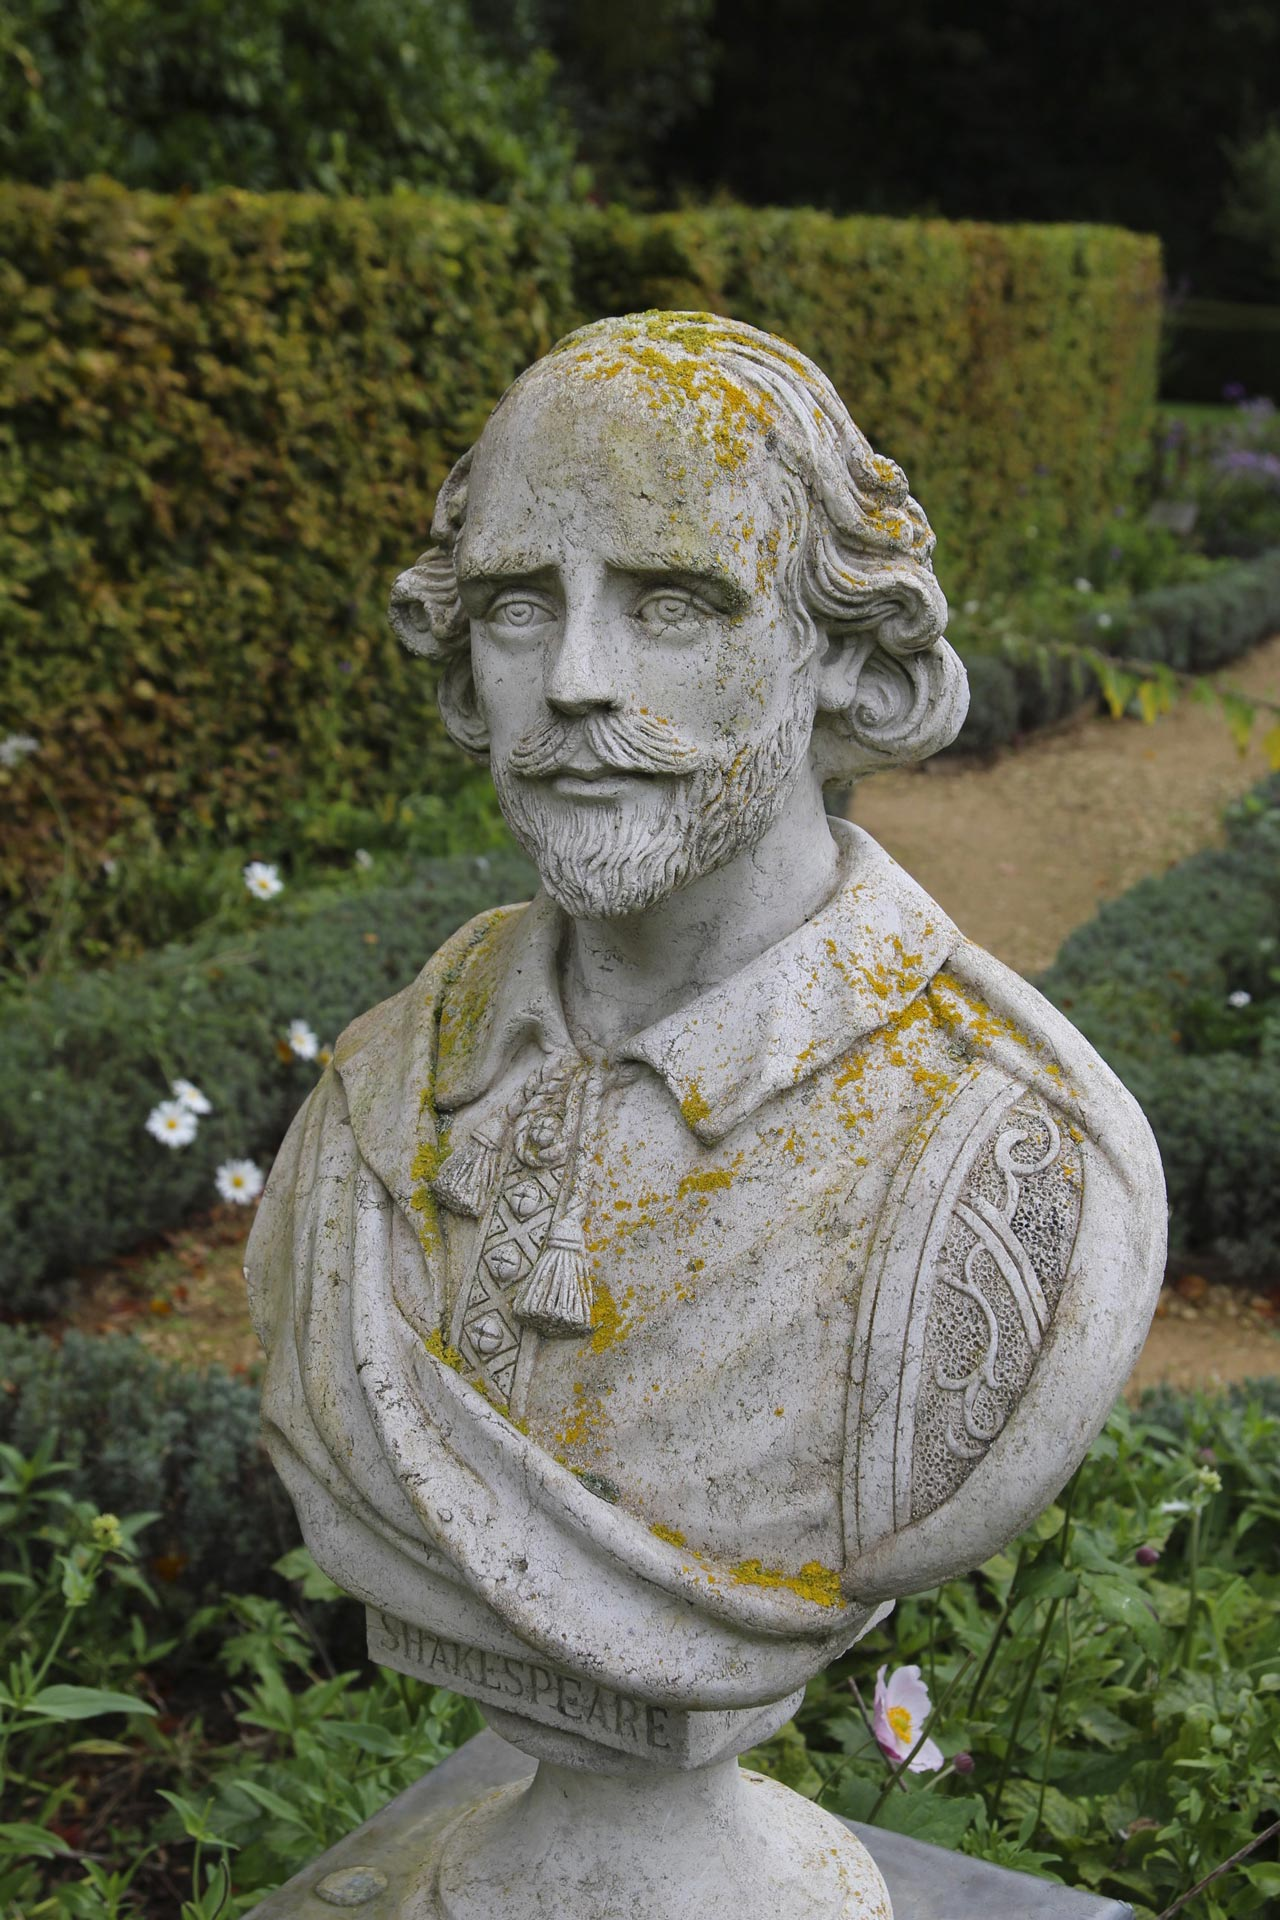 Statue at Painswick Roococo Garden by Kathryn Yengel.